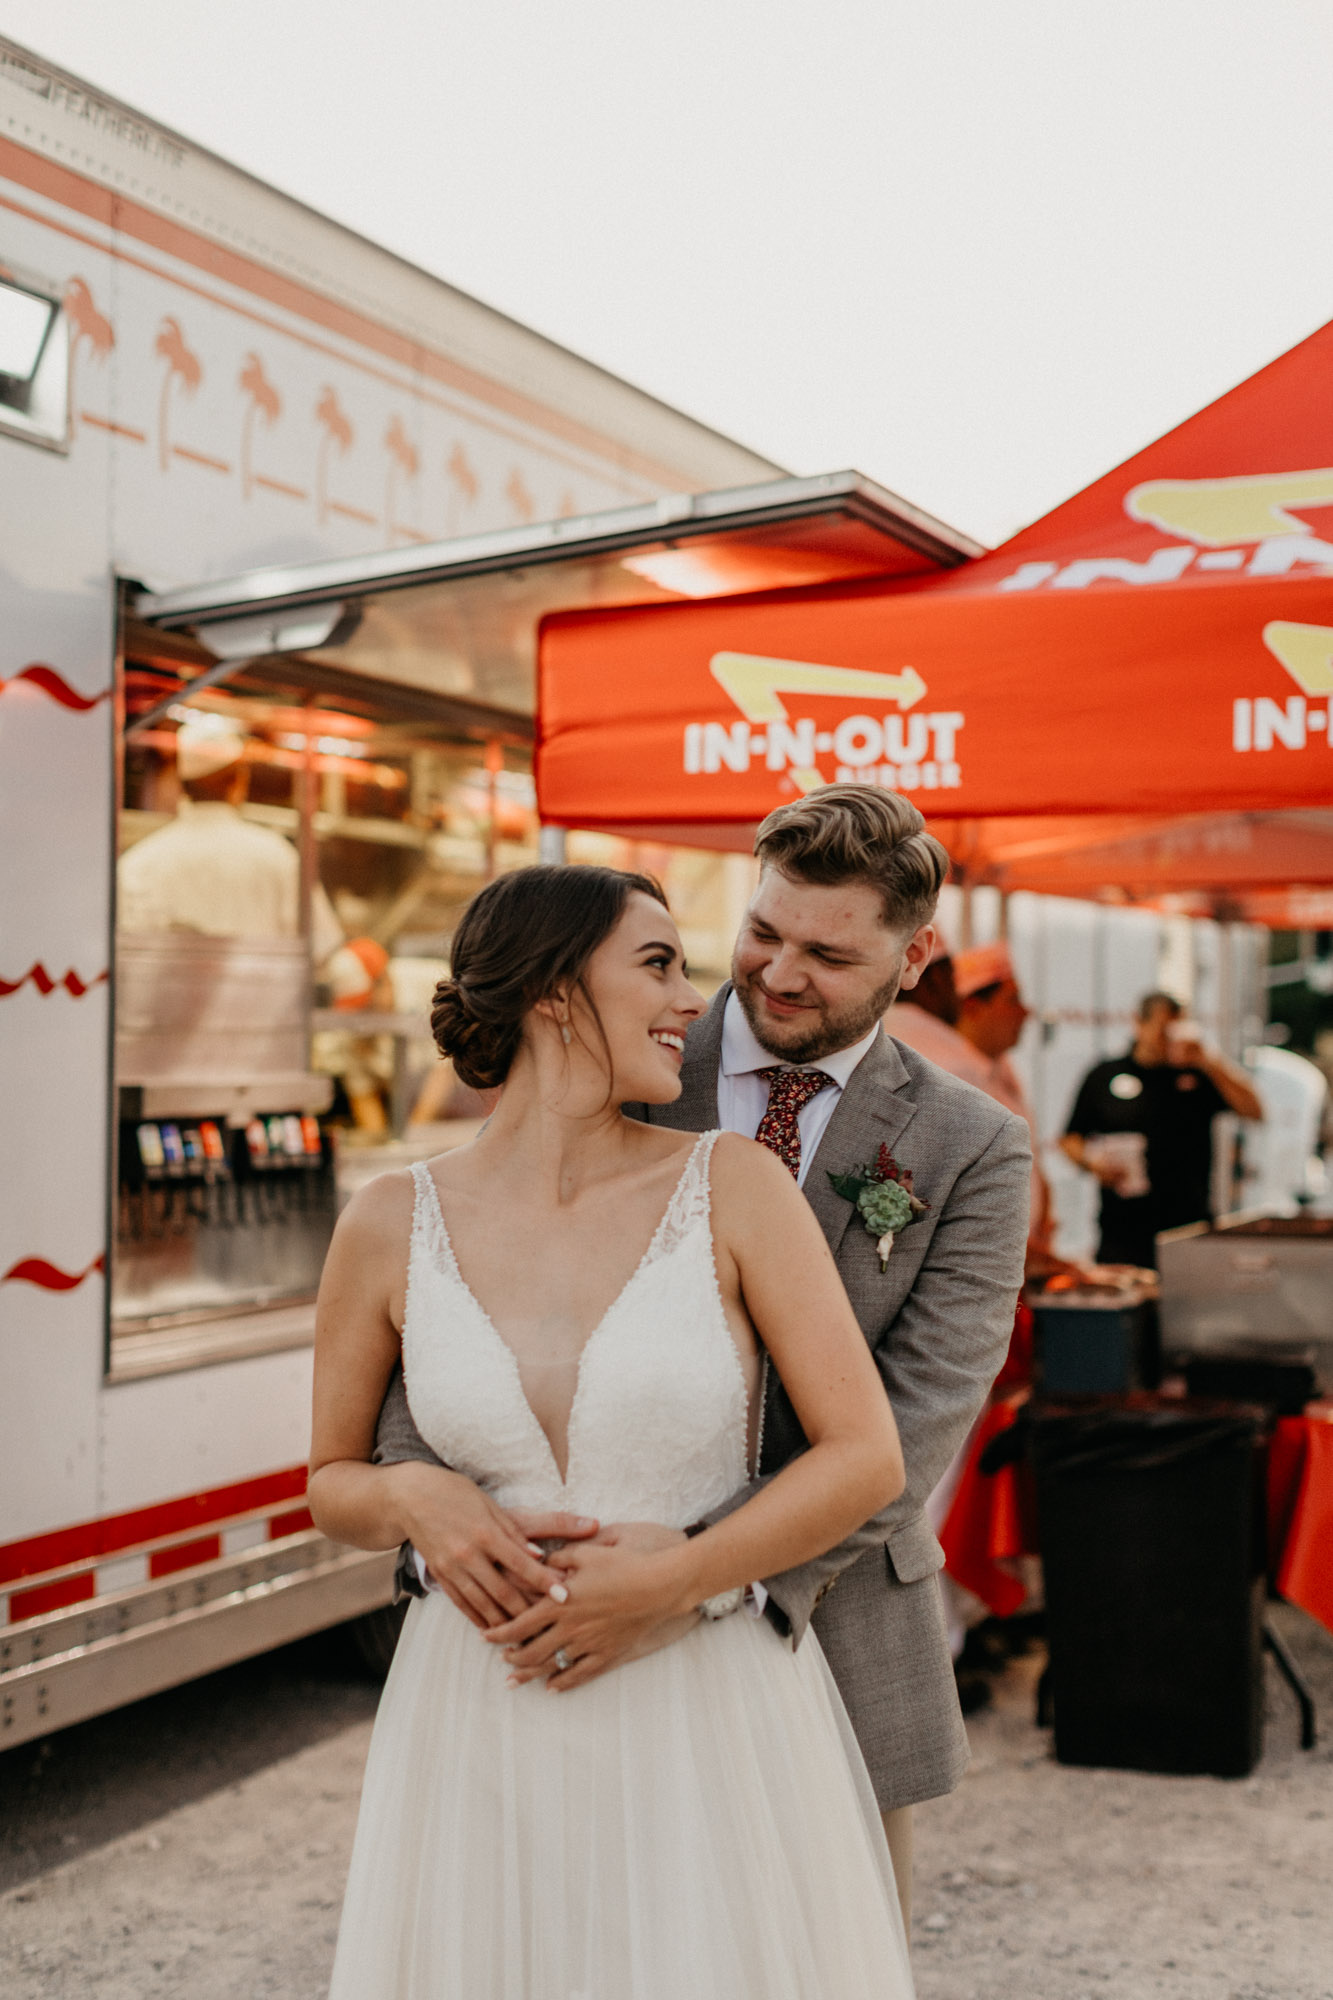 Cute couple takes photo in front of in and out truck on their wedding day